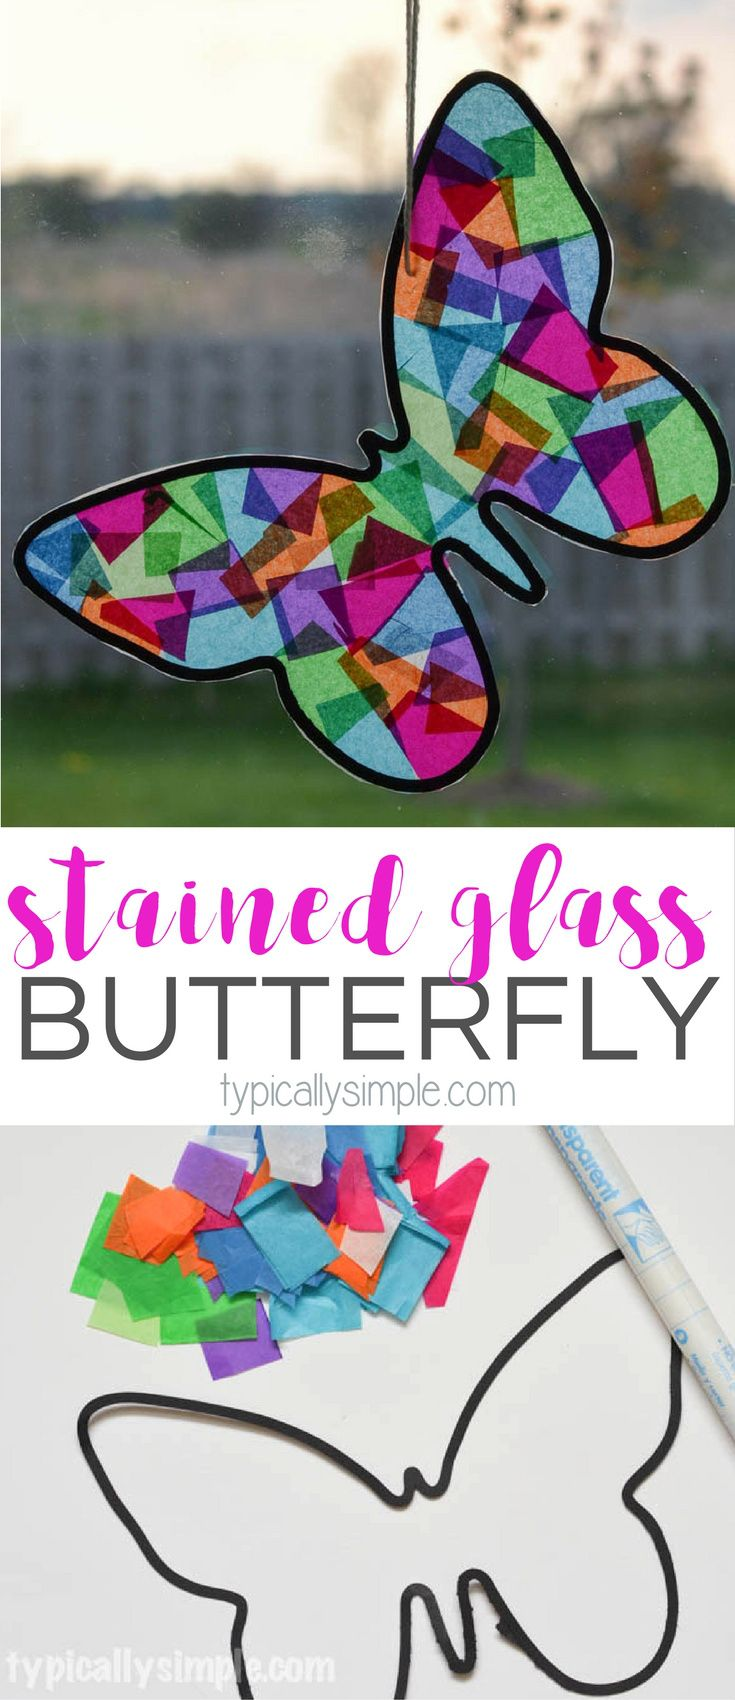 Stained glass butterfly craft a fun spring craft to make with the kids using tissue paper and black construction jeuxipadfo Gallery